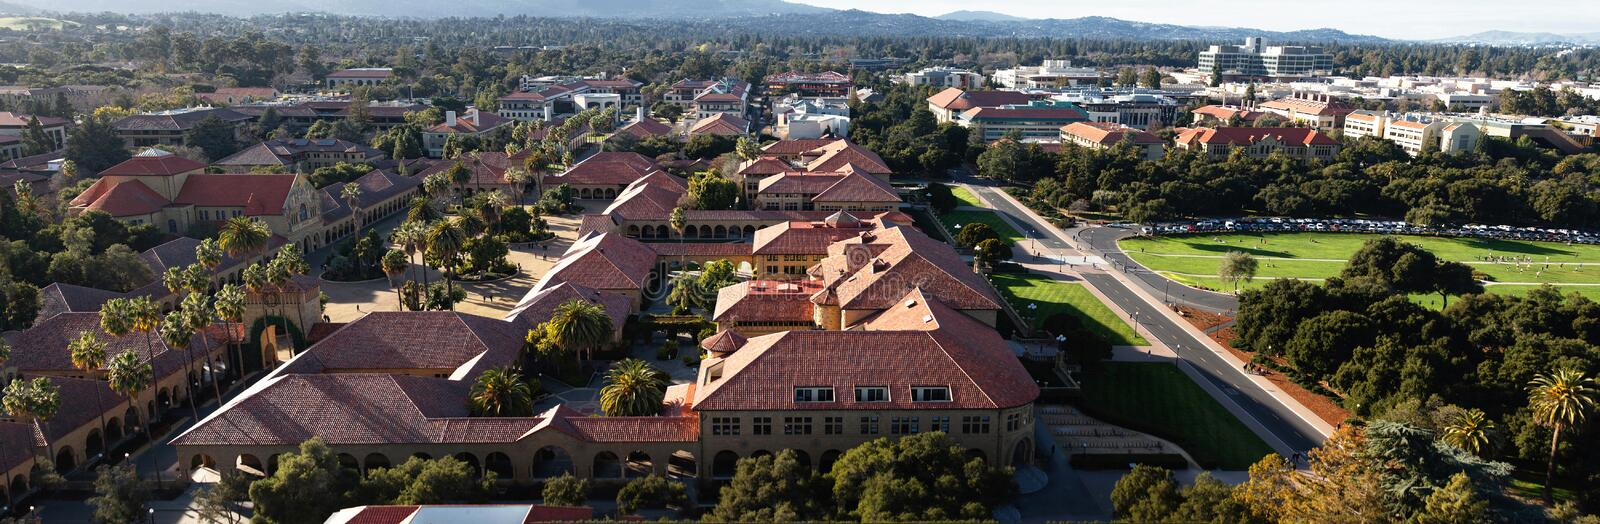 Stanford University Overview fotografia de stock royalty free